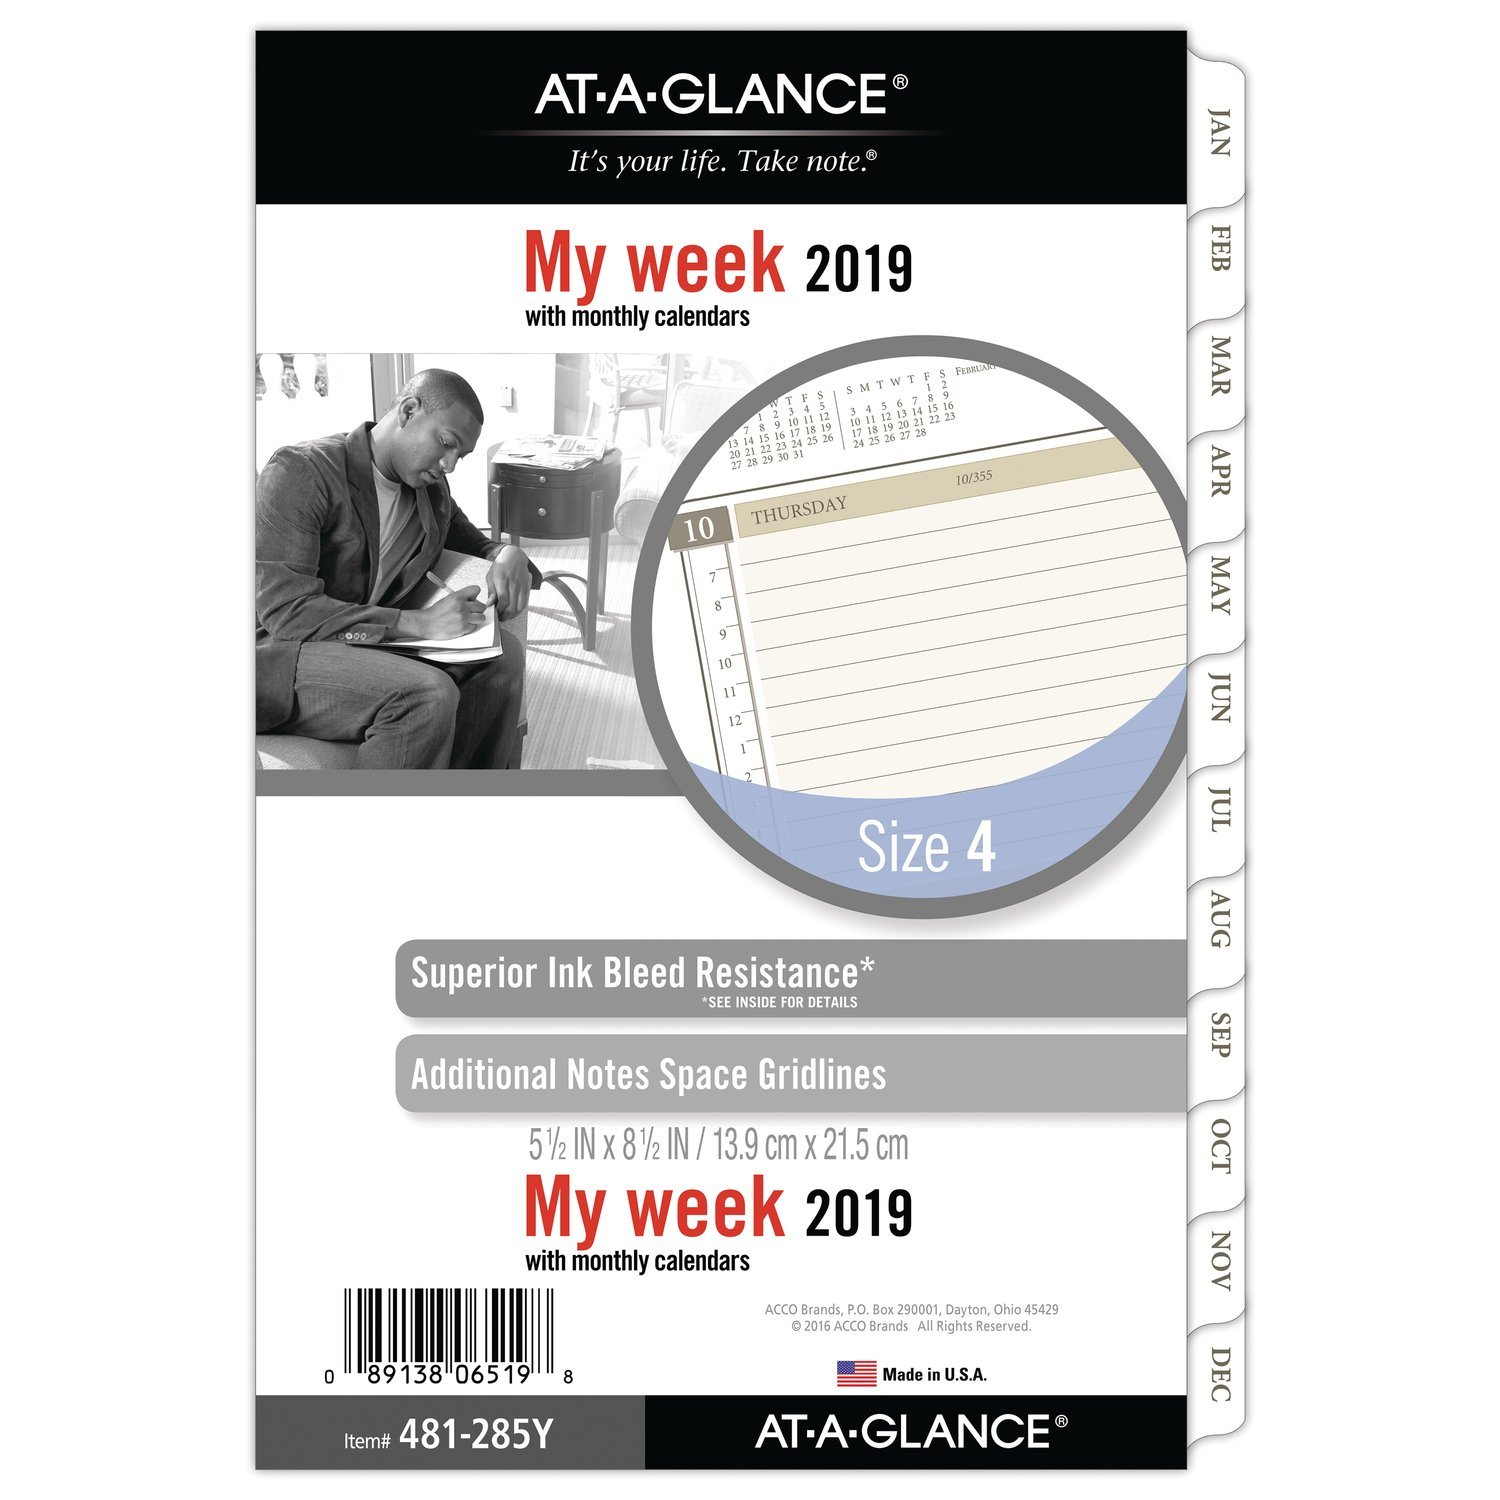 AT-A-GLANCE 2019 Weekly & Monthly Planner Refill, Day Runner, 5-1/2'' x 8-1/2'', Desk Size 4, Loose Leaf (481-285Y)